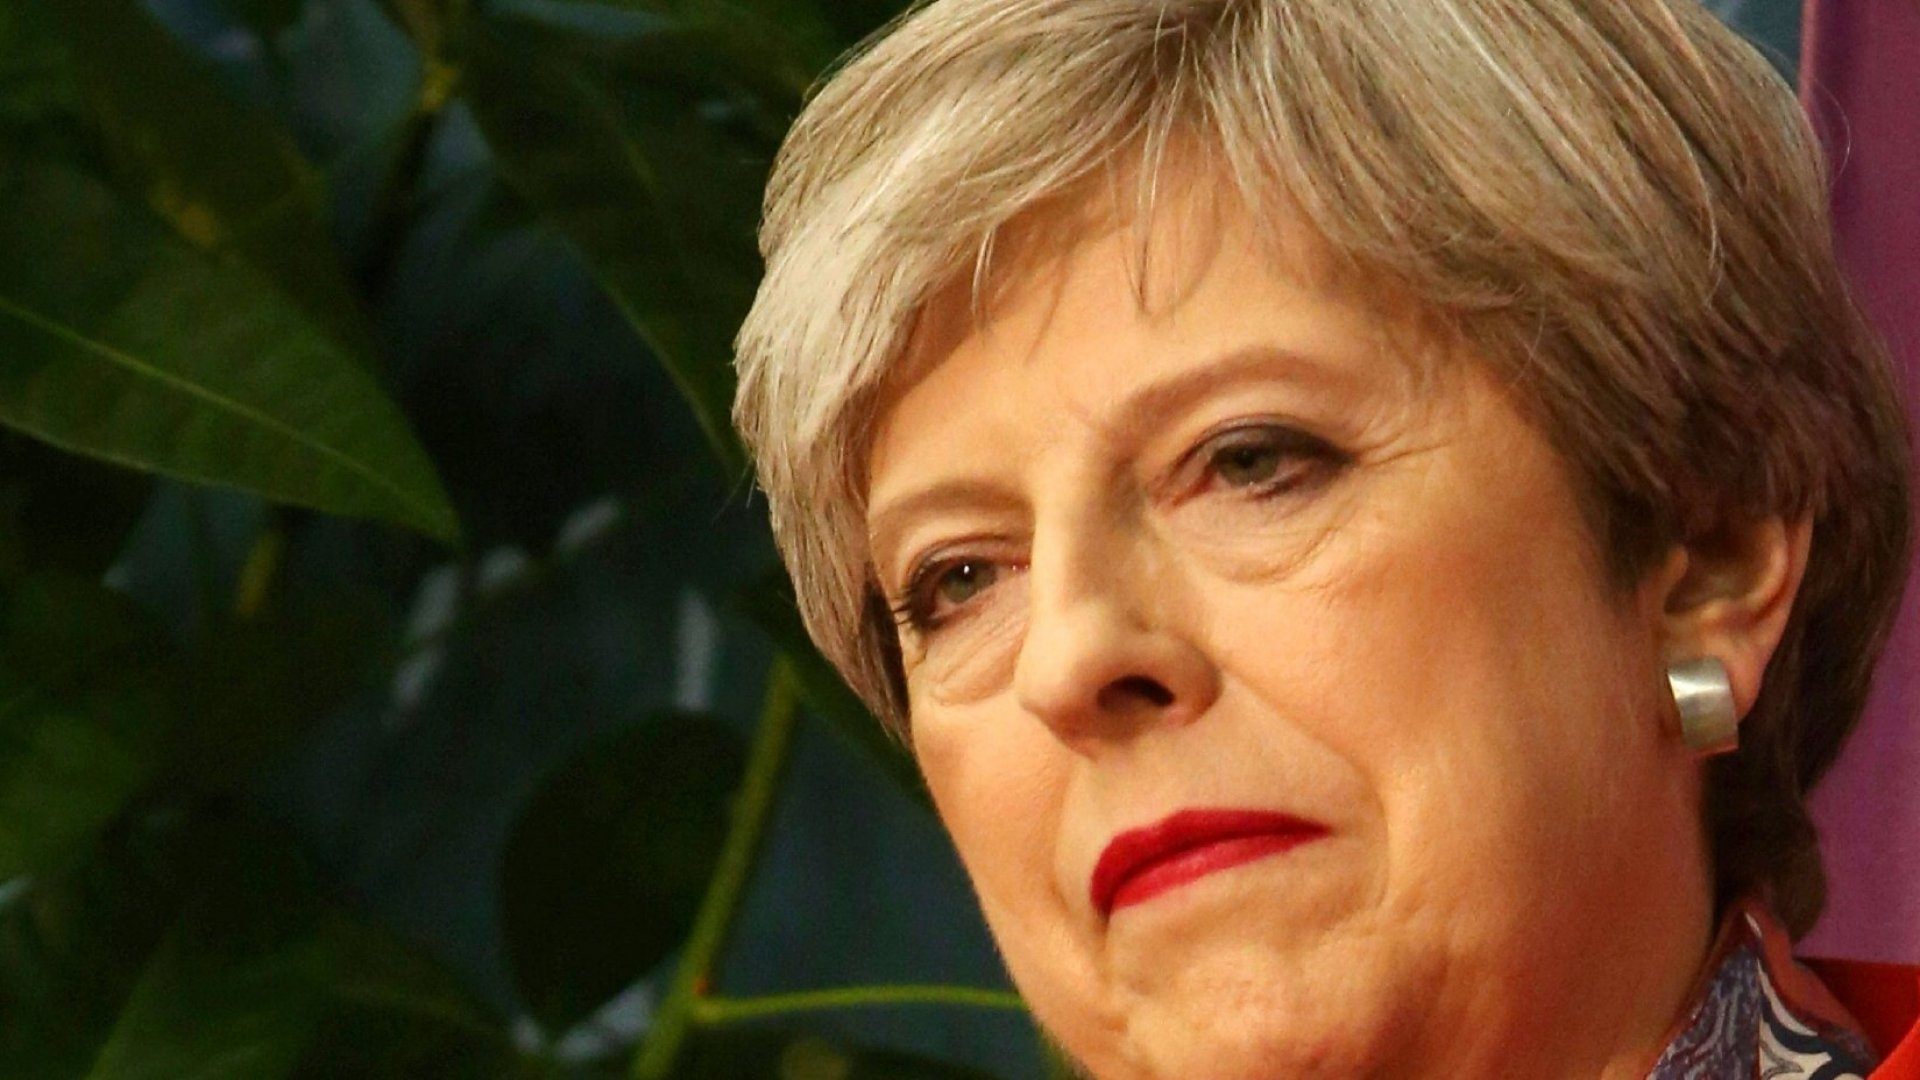 British Prime Minister Theresa May, after exit polls predicted her party would lose seats in Parliament.